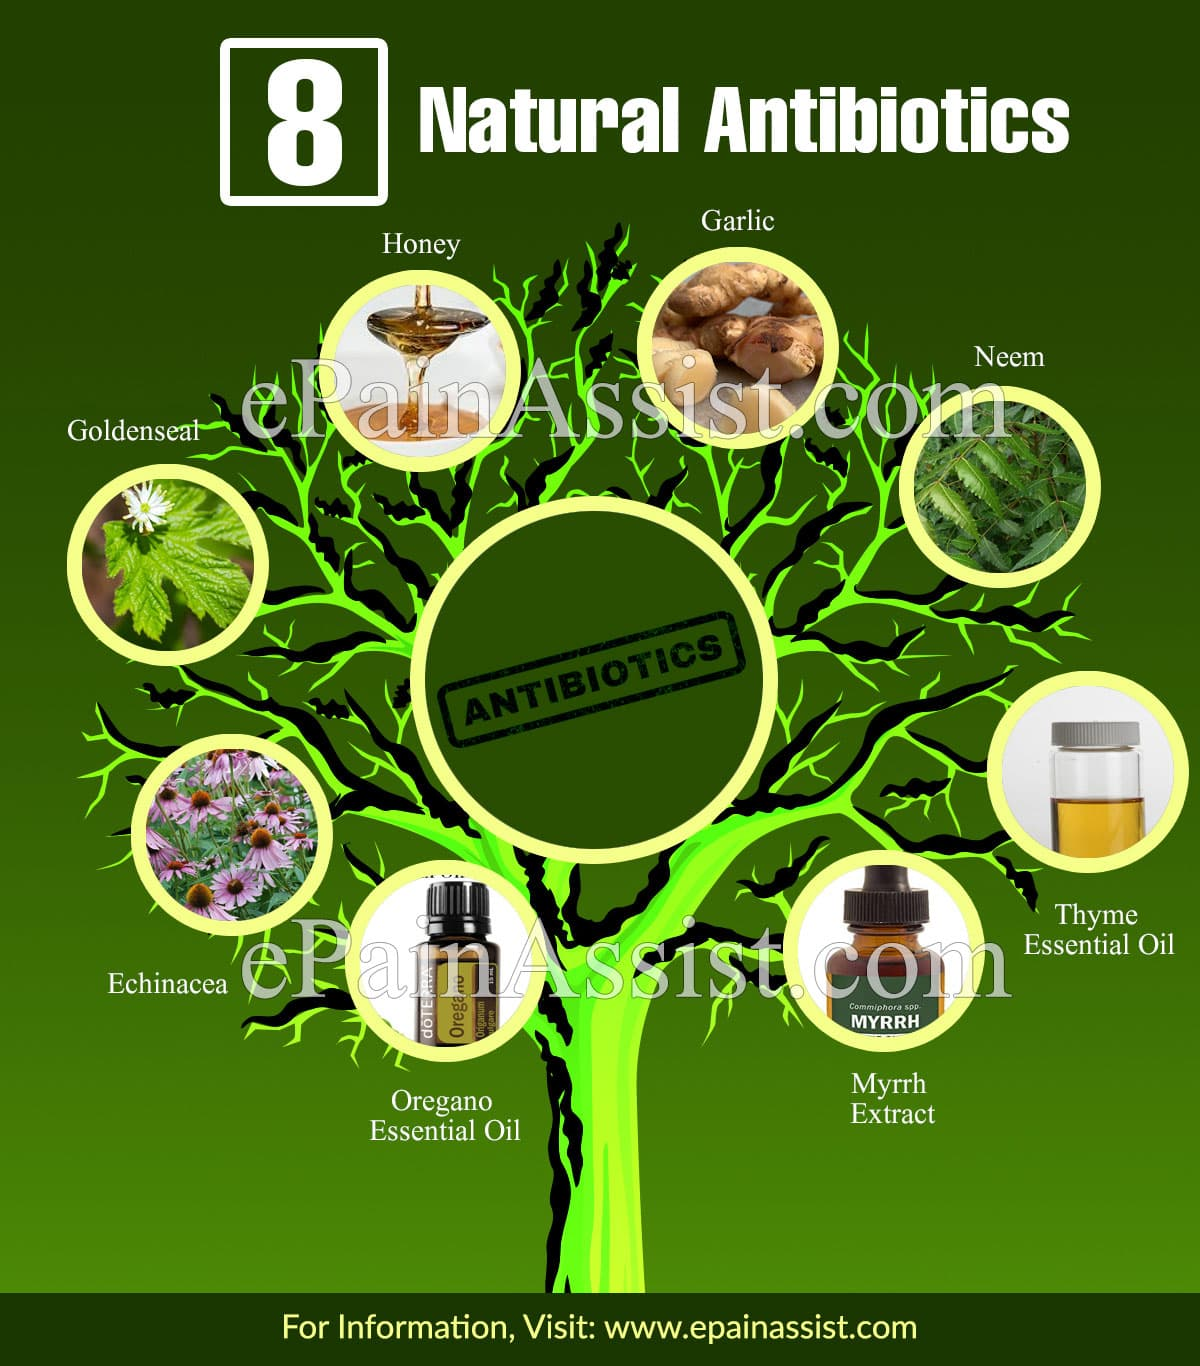 8 Natural Antibiotics